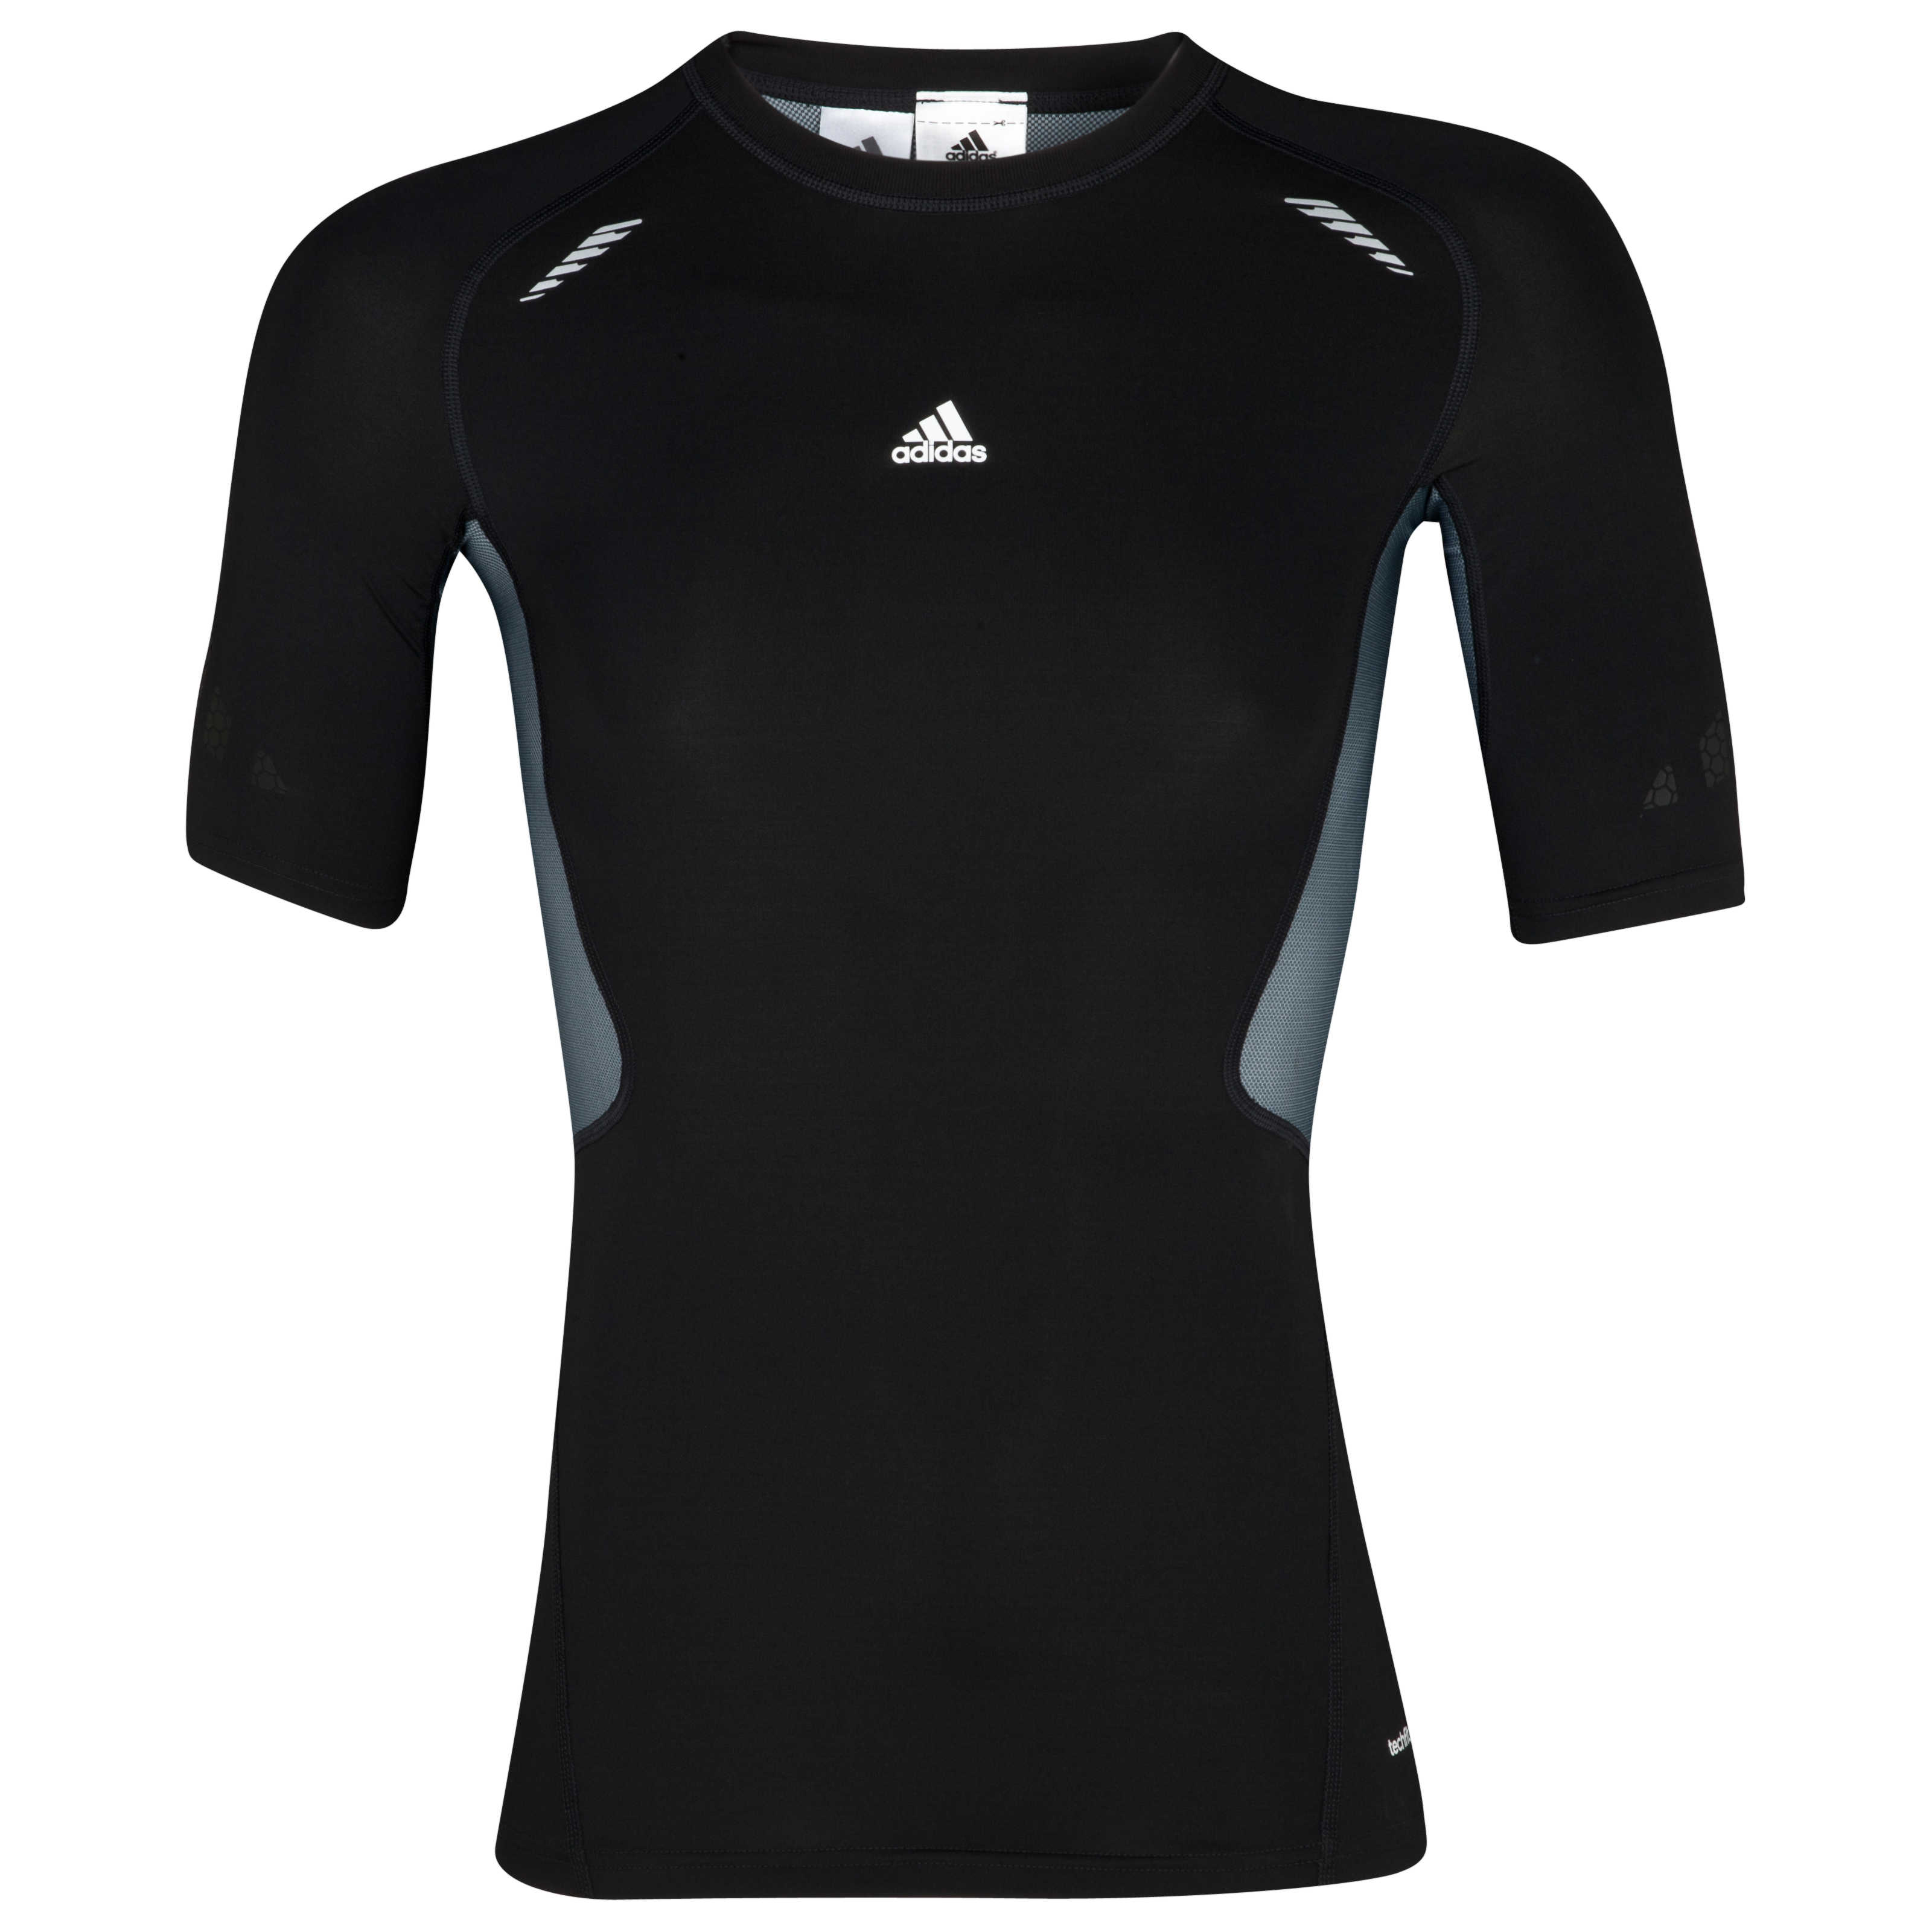 adidas TechFit Preperation Baselayer Top - Short Sleeve - Black